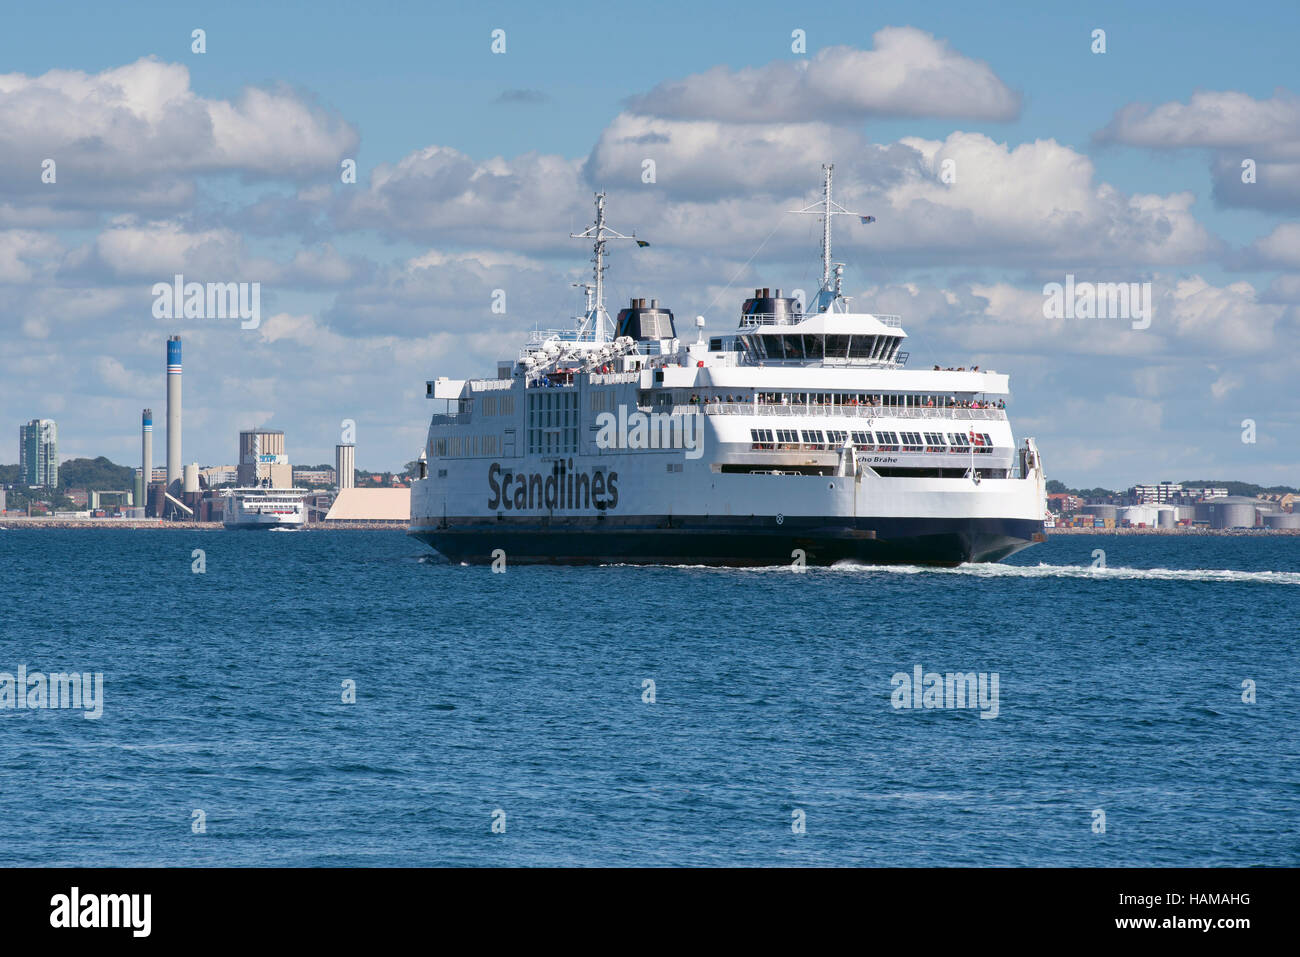 Tycho Brahe ferry of shipping company Scandlines, on the Elsinore-Helsingborg route between Denmark and Sweden via - Stock Image